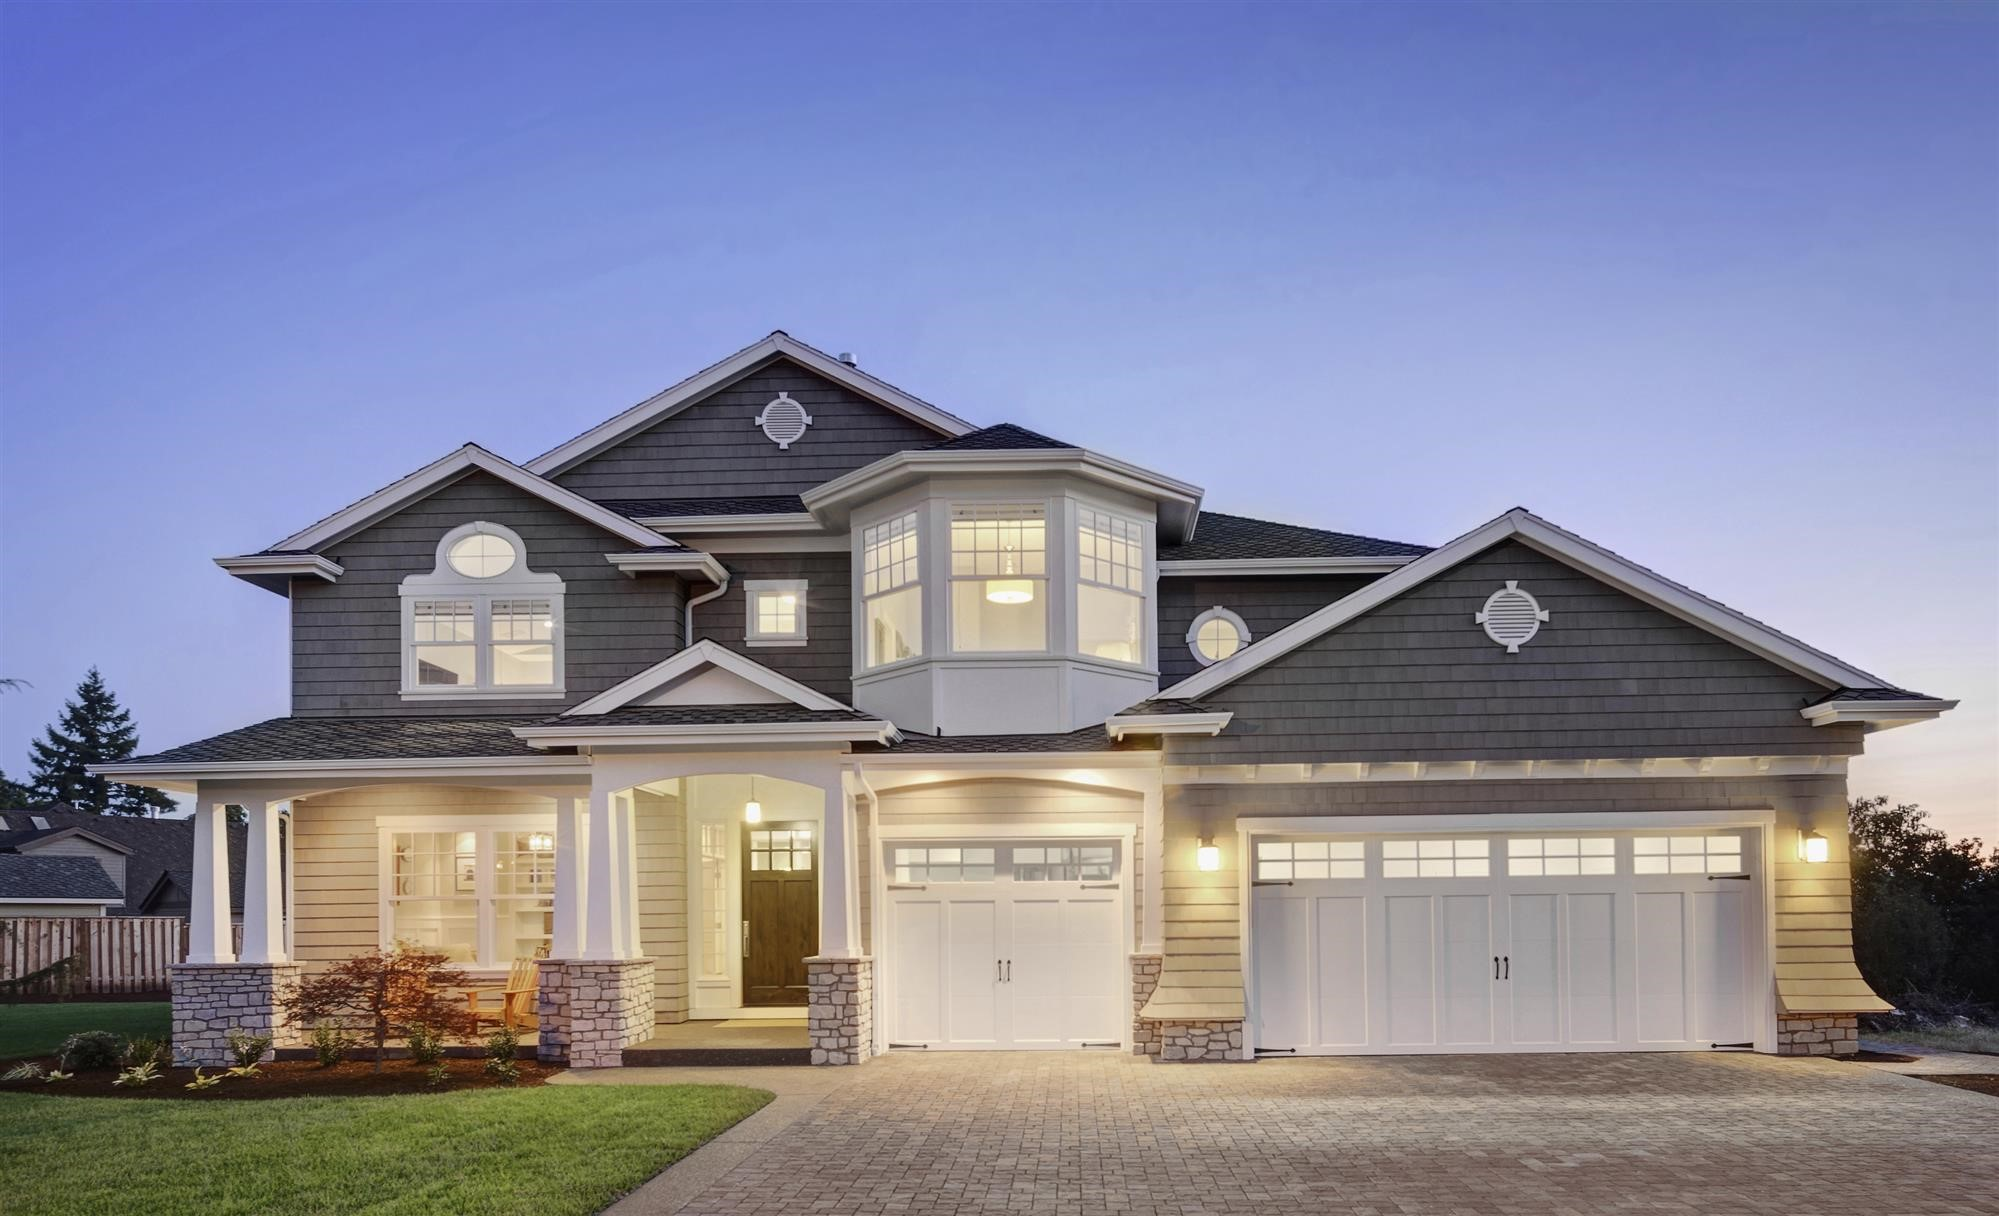 Buying a New Home, the Right Way